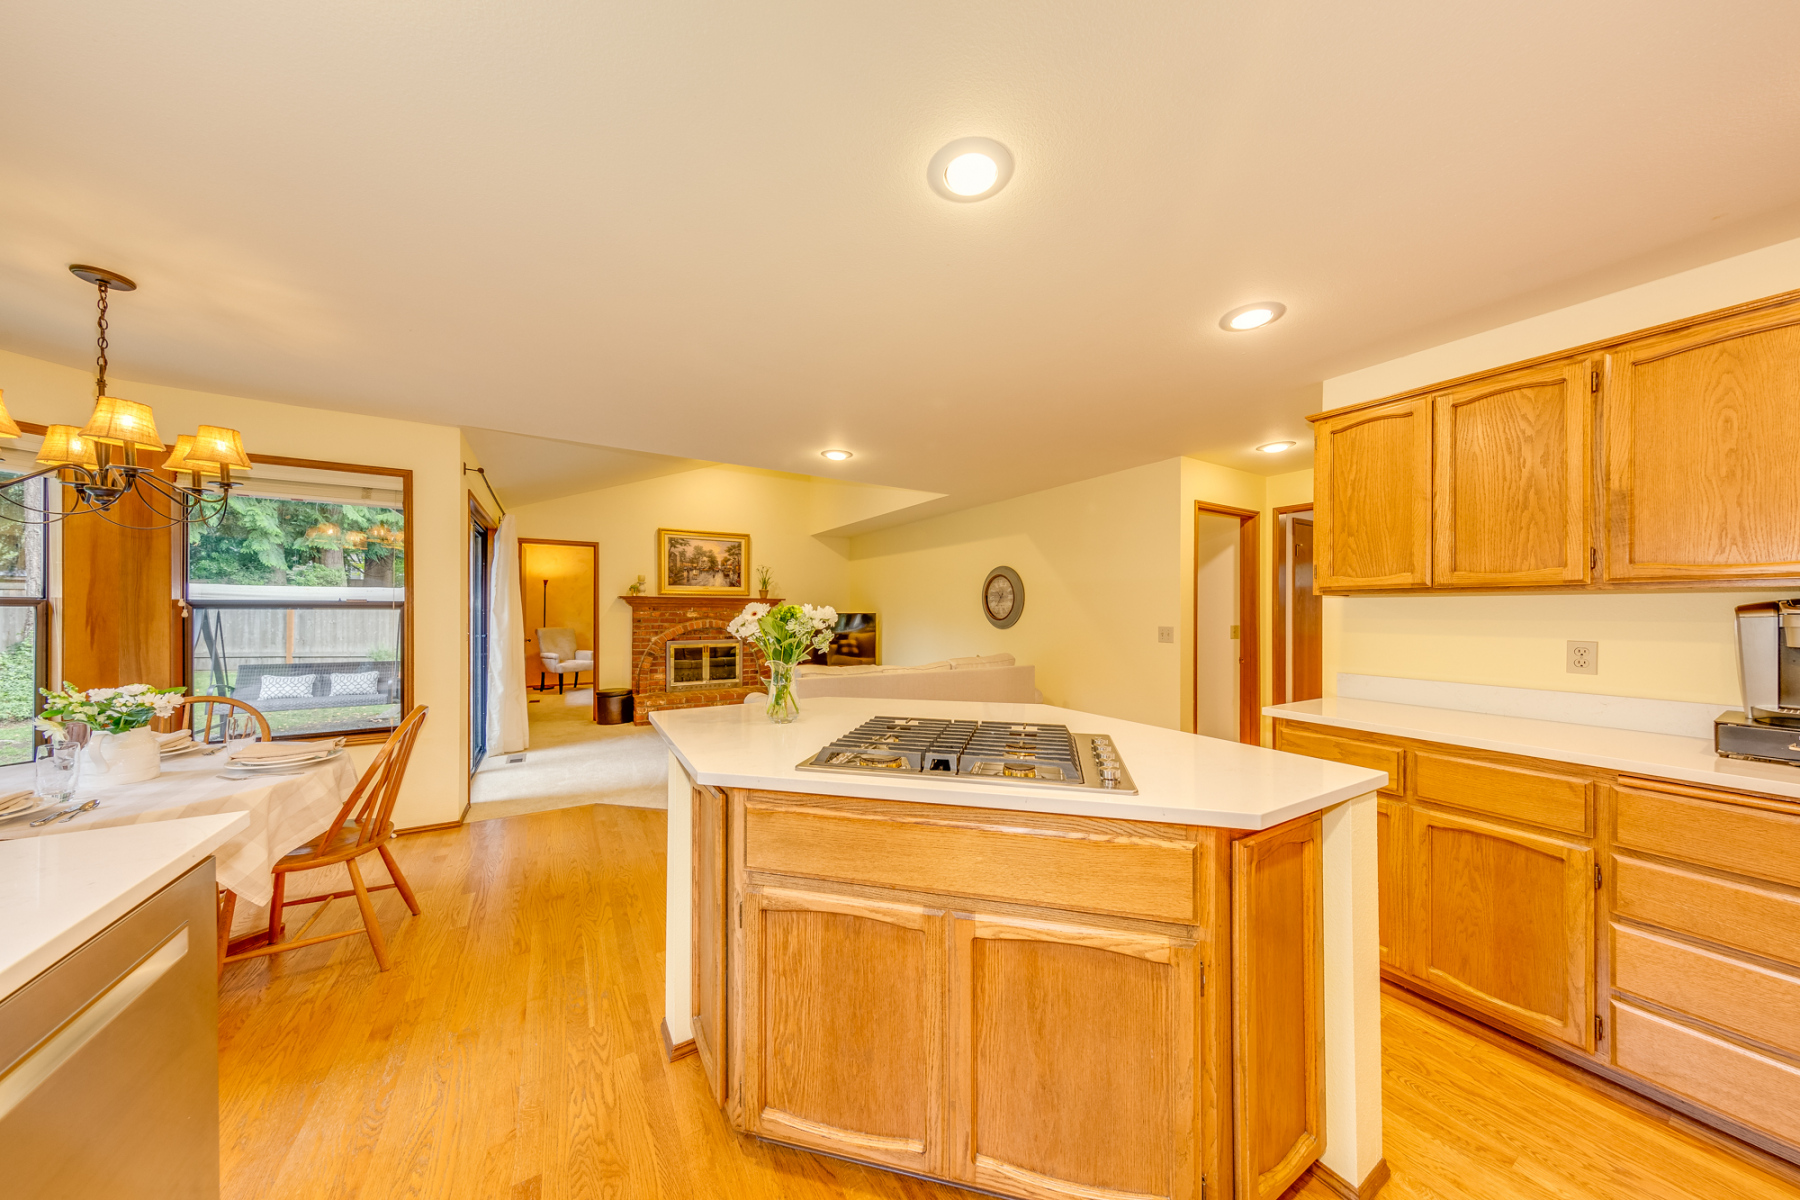 14151-177th-Ave-NE-Redmond-11